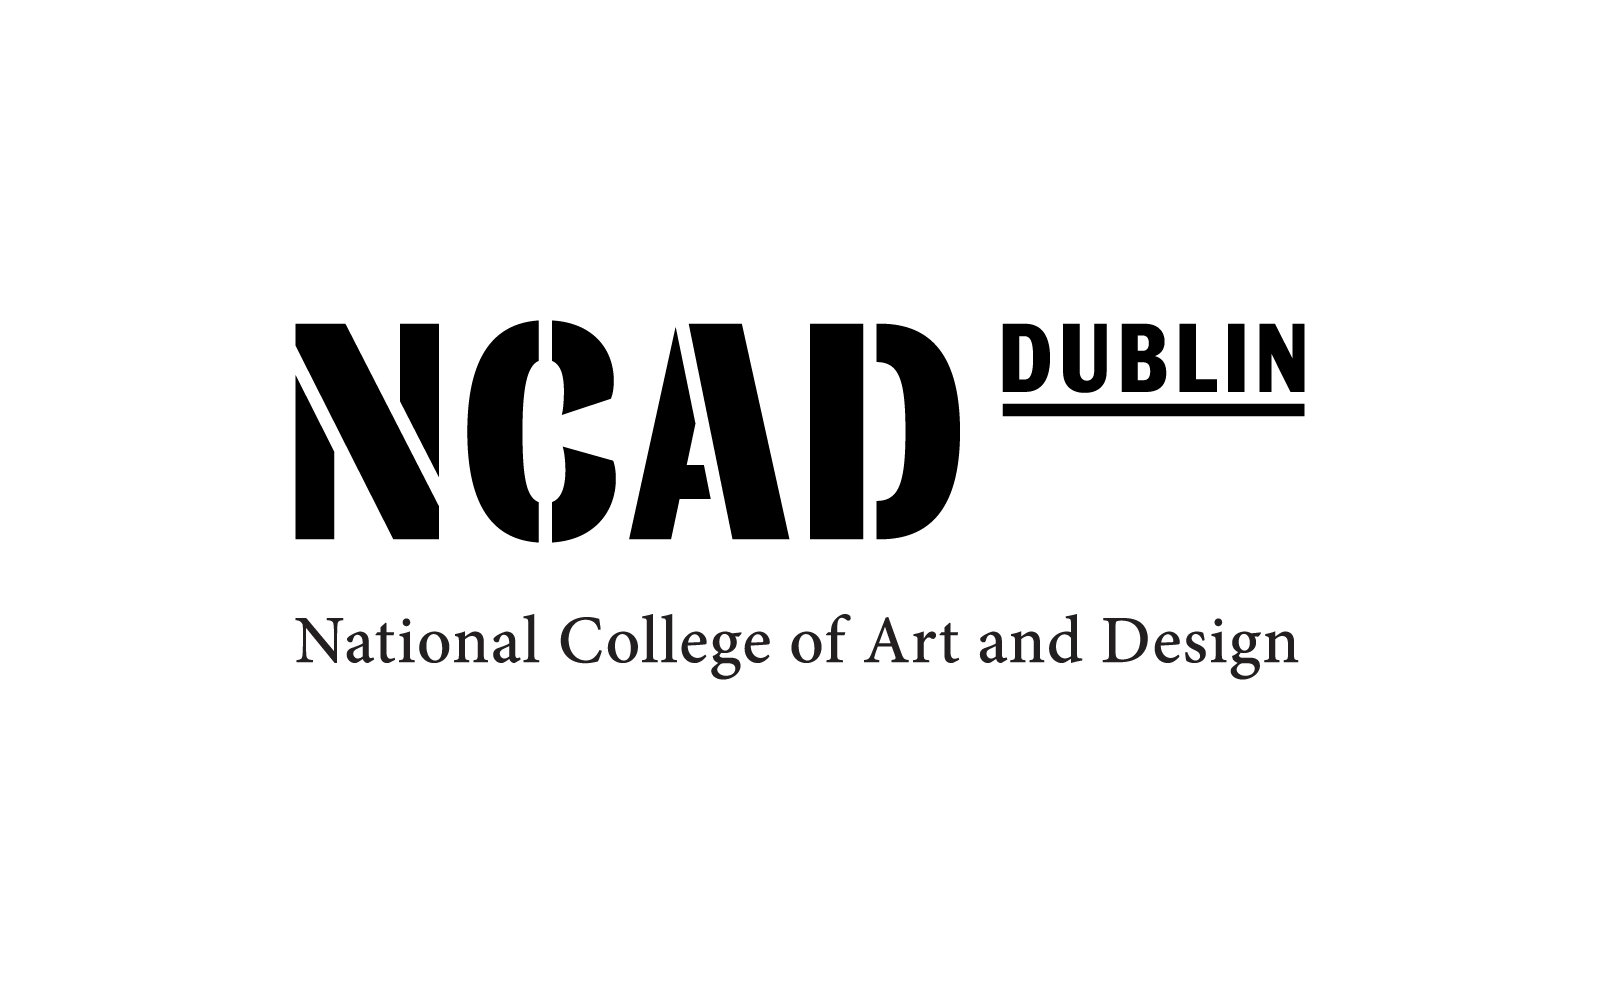 Cover image: Bill - the new NCAD typeface + identity (2014)